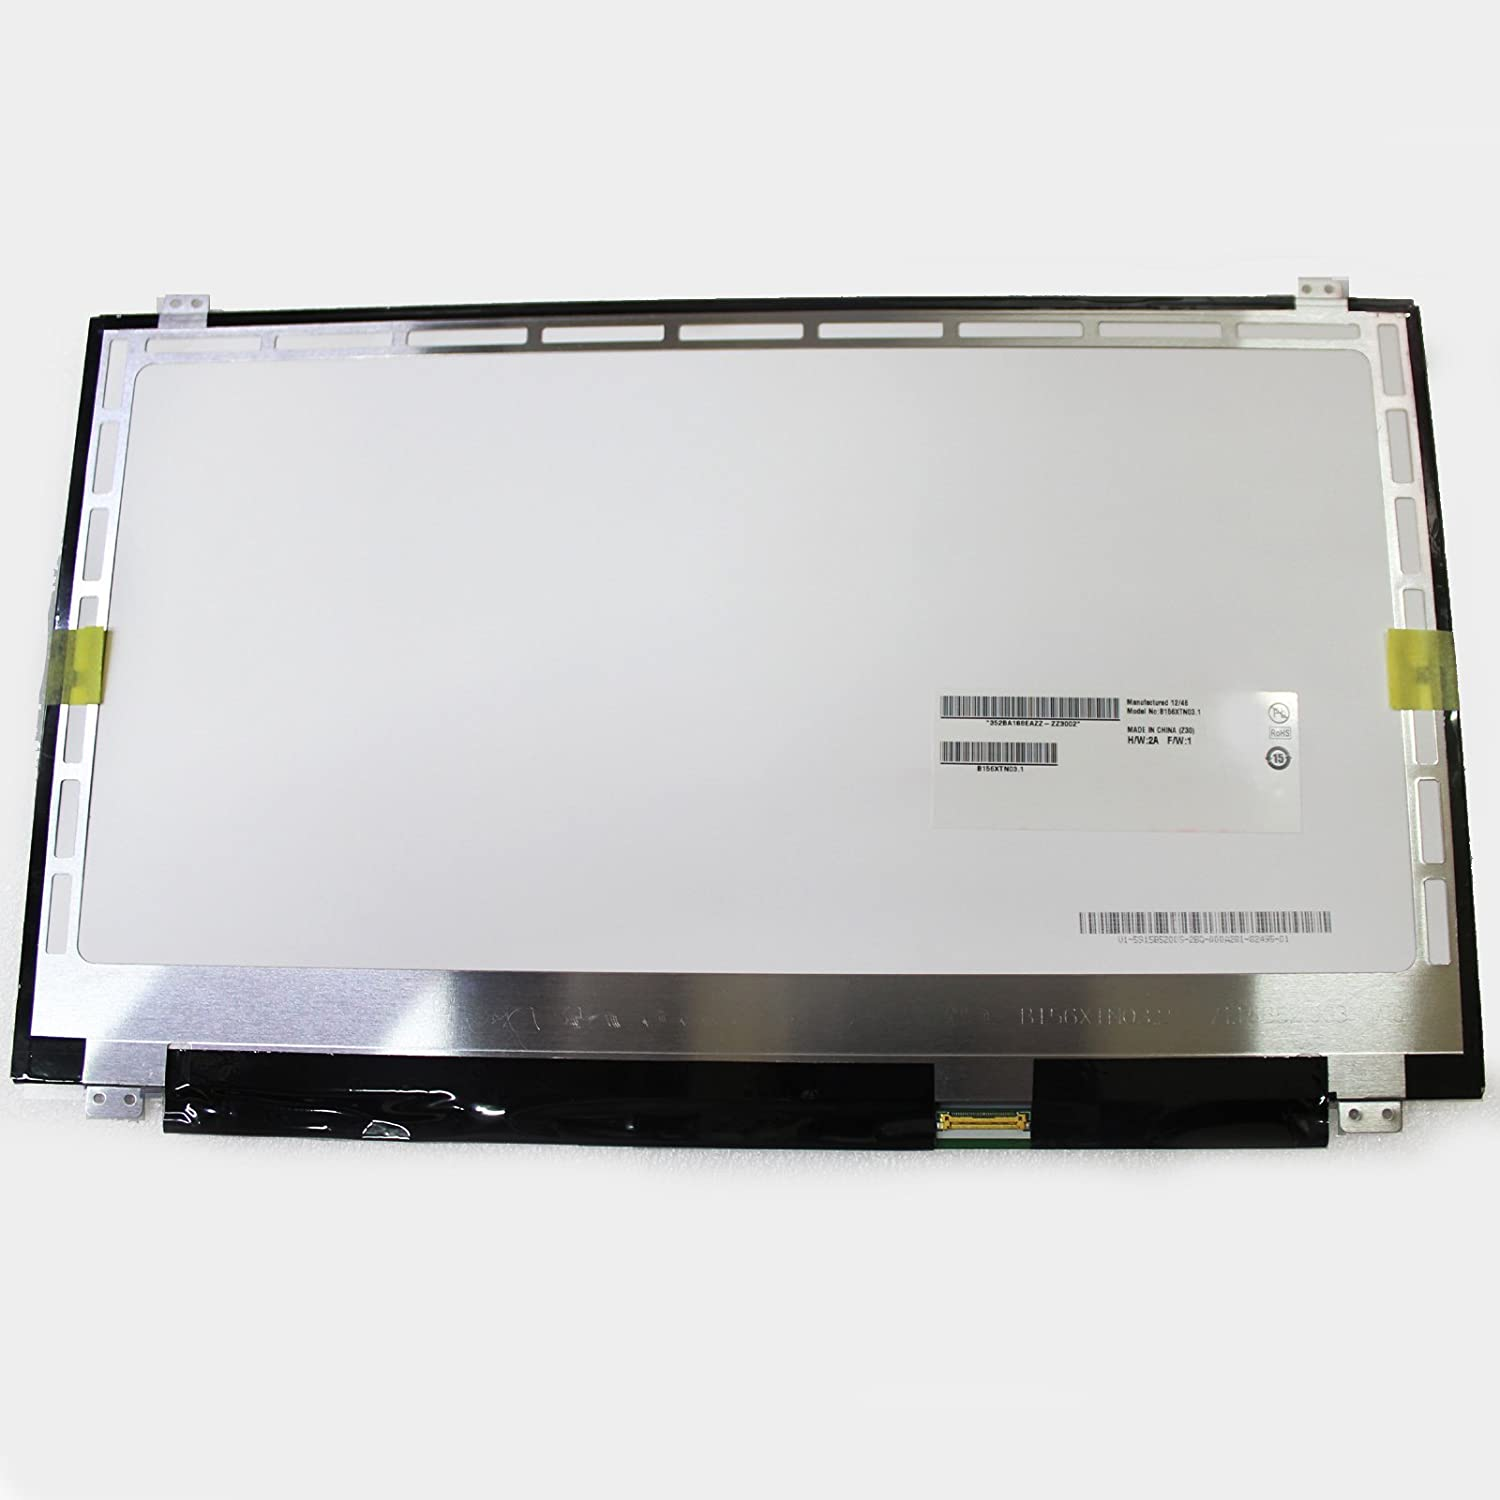 LCDOLED Laptop LED LCD Screen Direct sale of manufacturer Aspire V5-552 ACER B156XTN03.1 for Don't miss the campaign